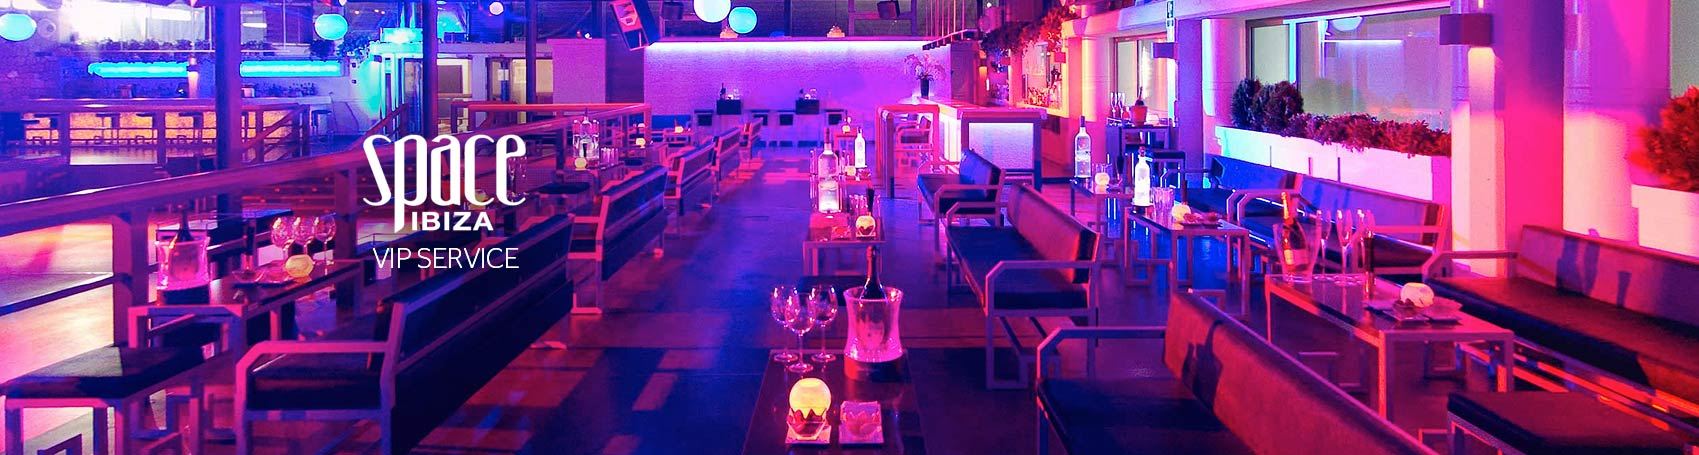 Table booking service nightclub Space VIP in Ibiza. VIP services Ibiza. Consulting Services Ibiza